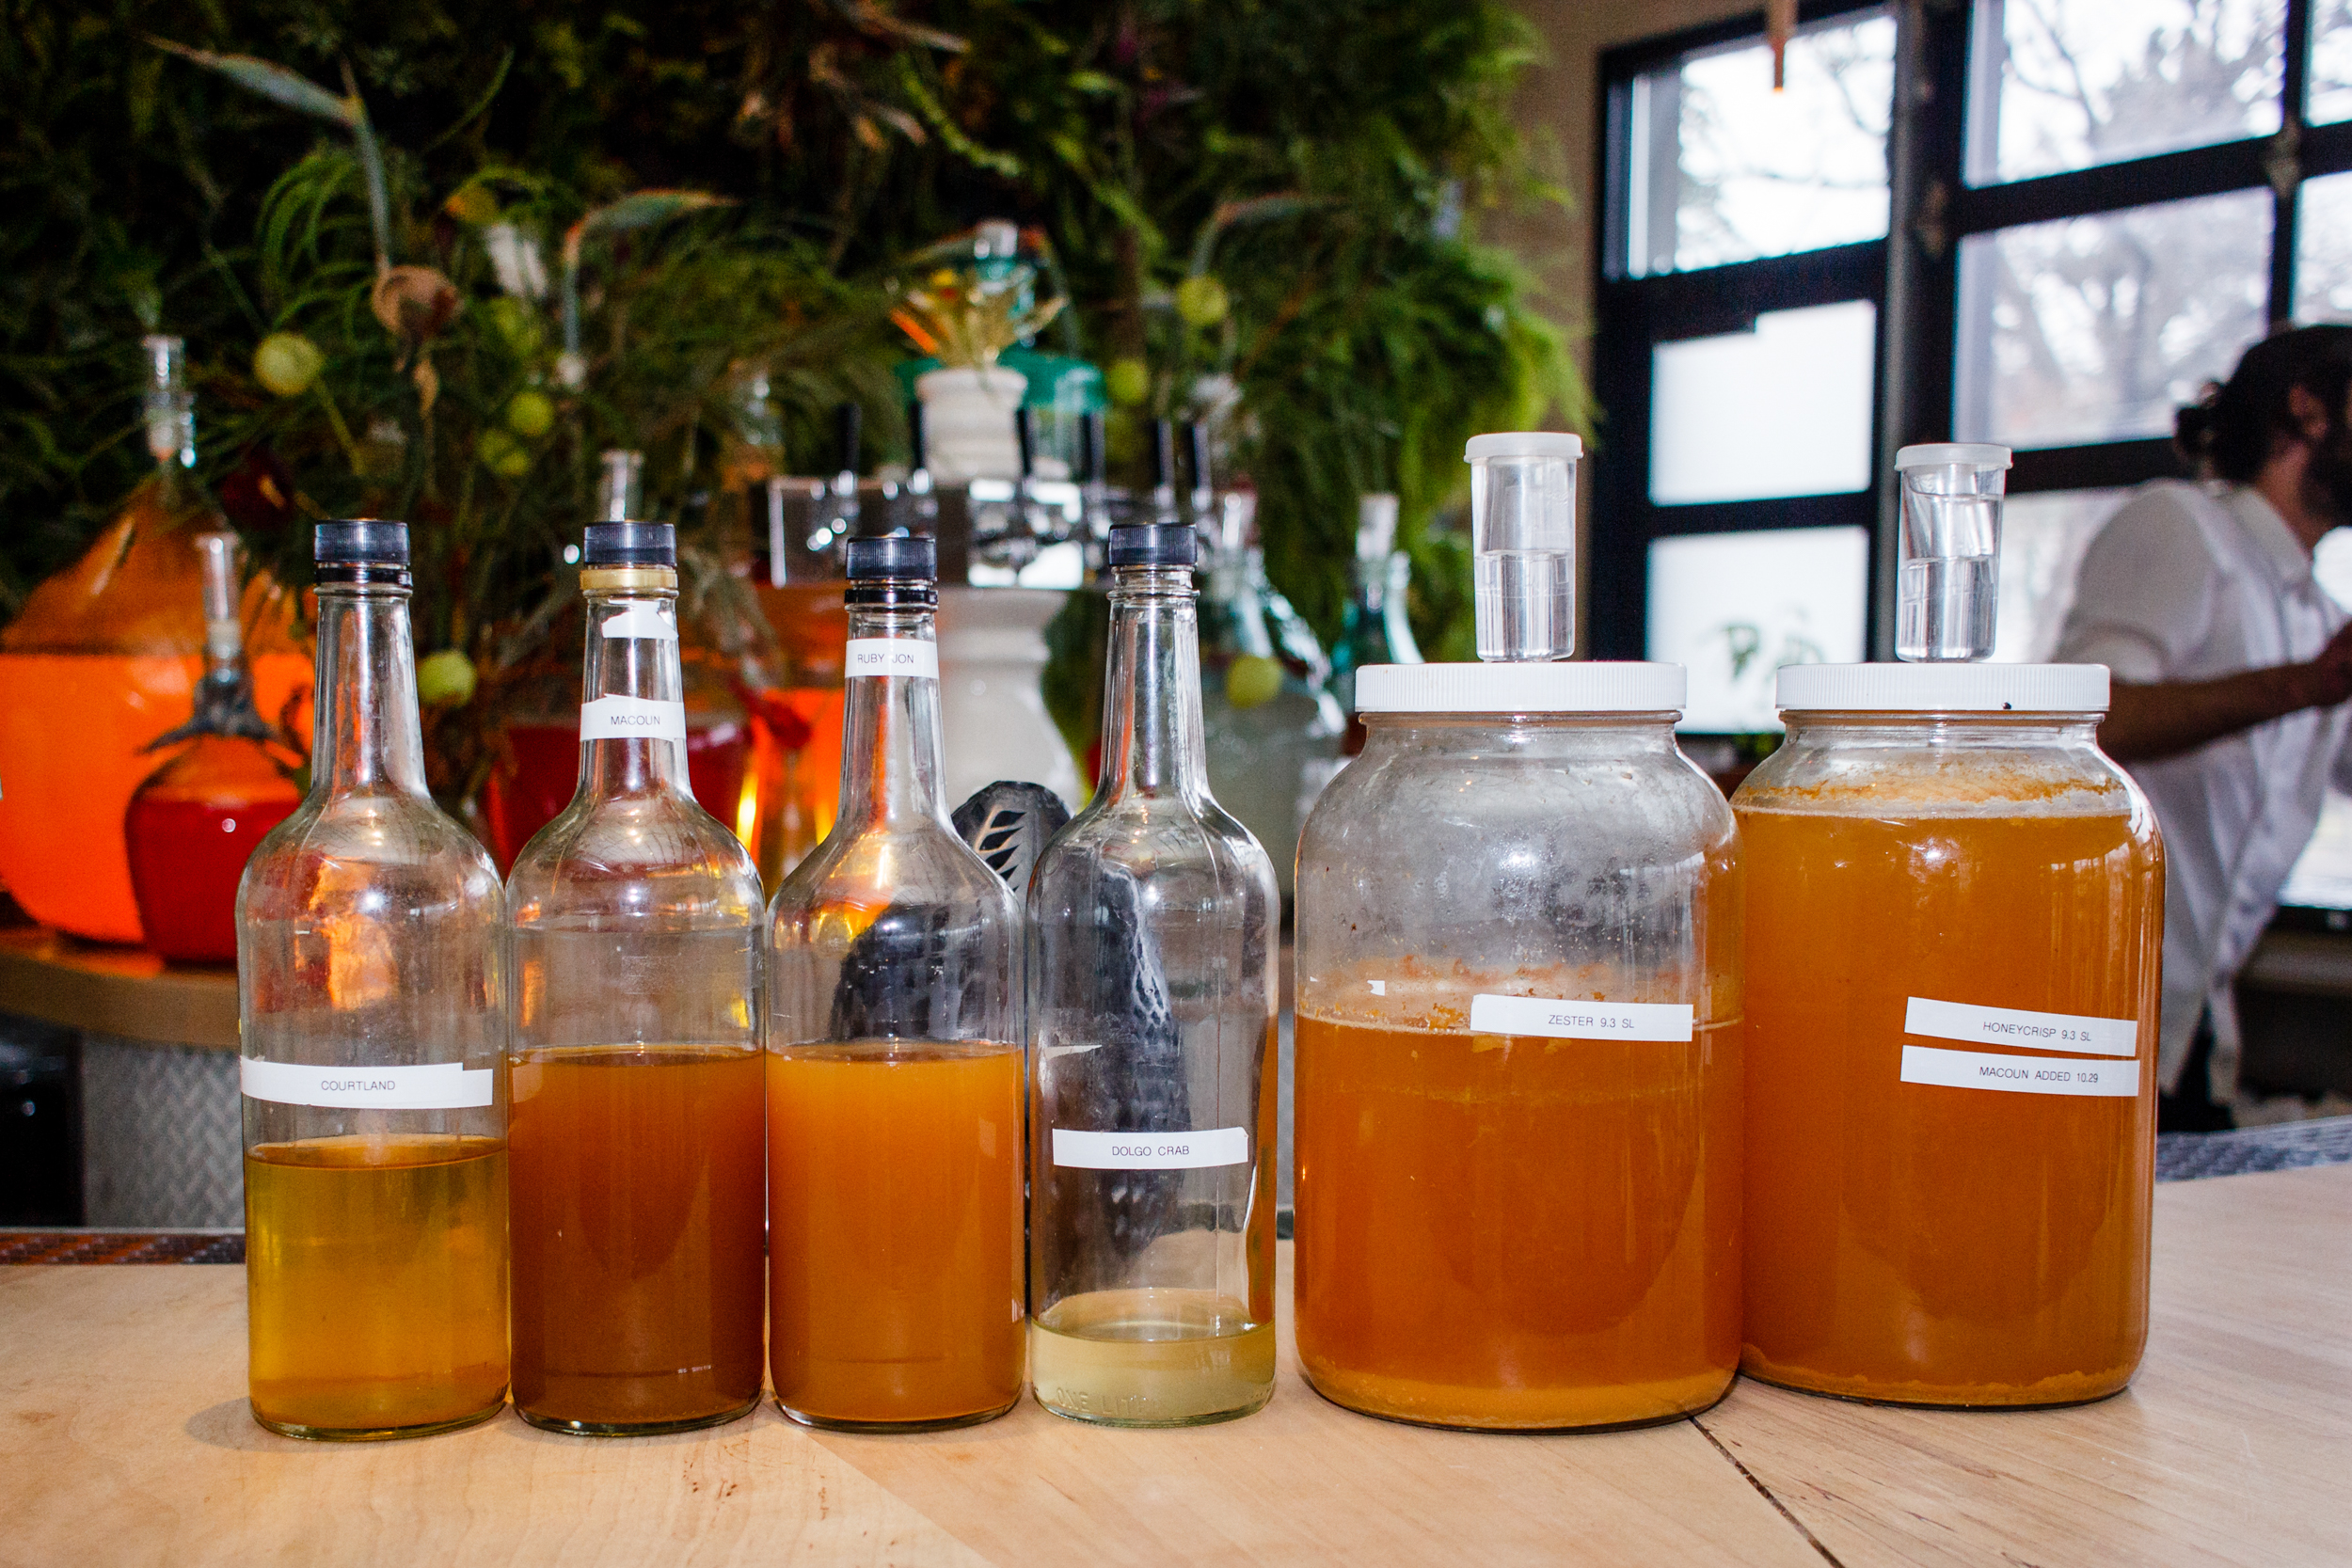 Several ferments used in the cocktail program at Colita // Photo by Nina Perkins